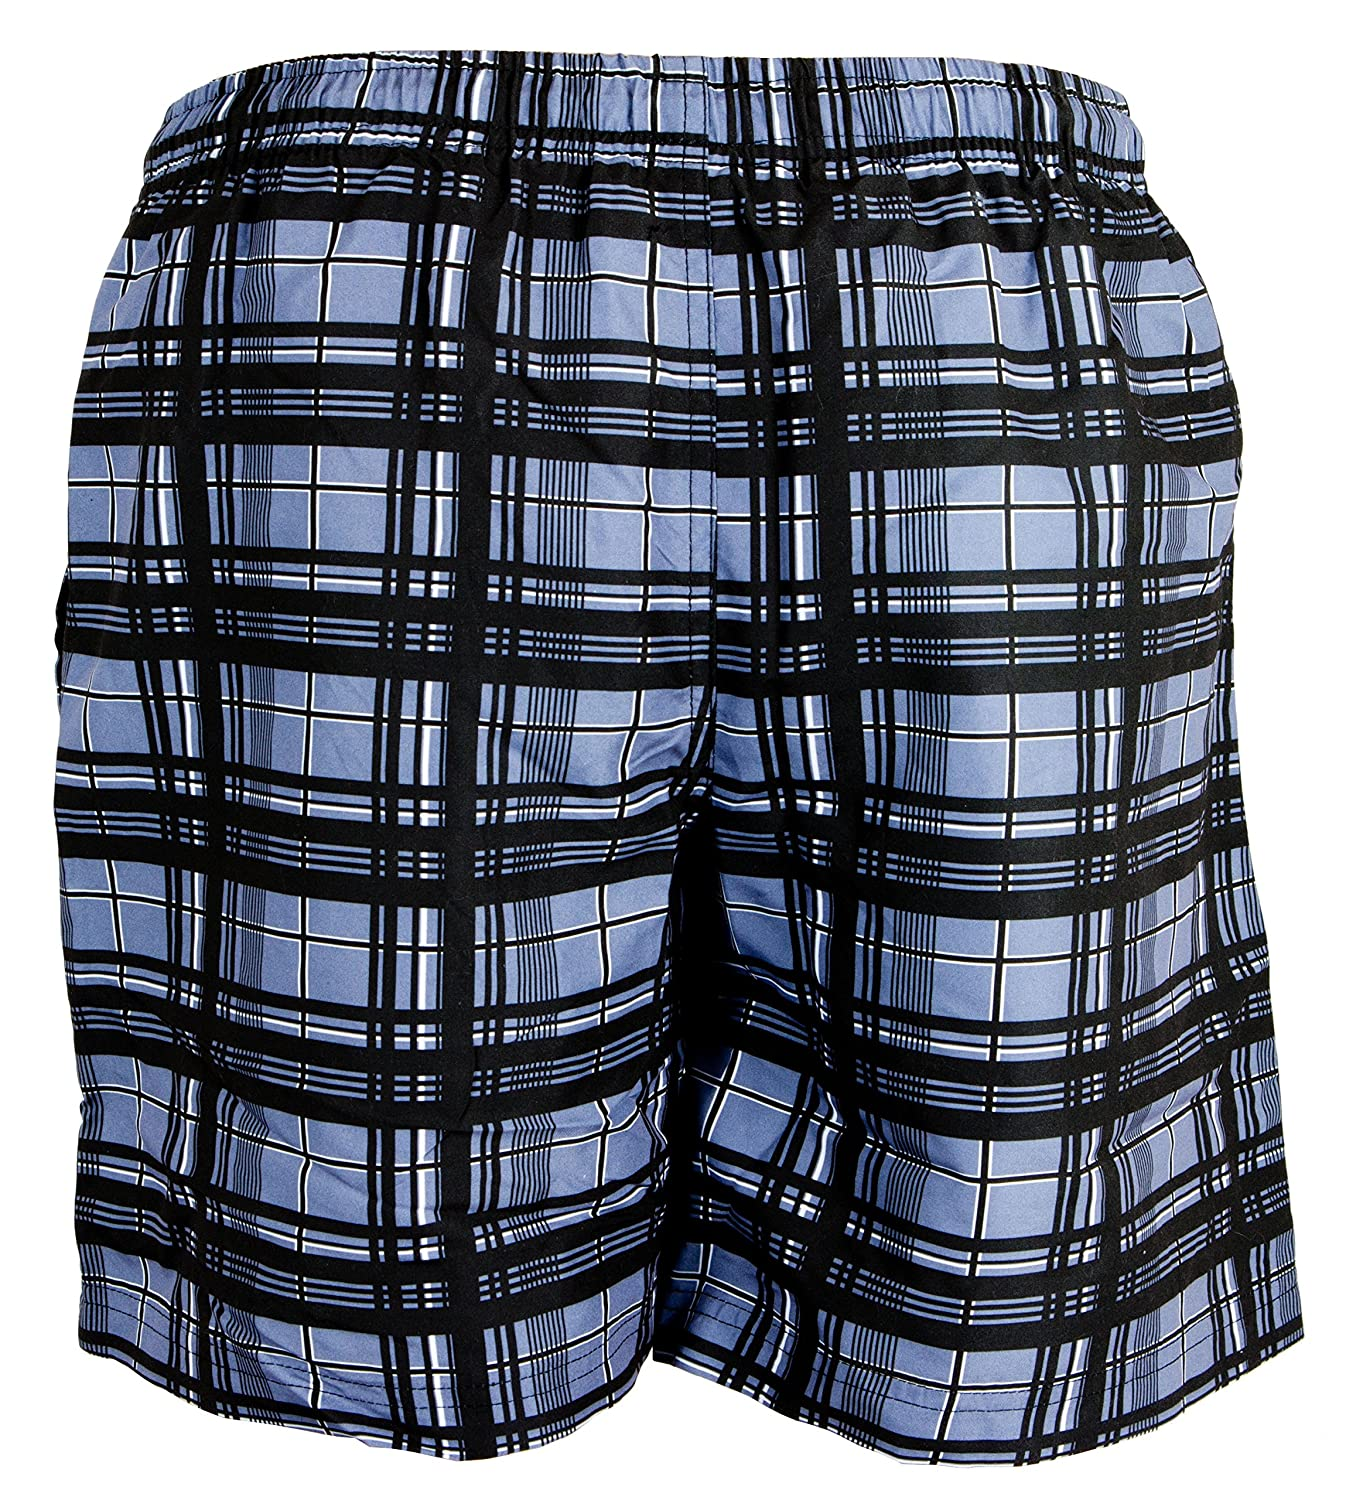 GUGGEN MOUNTAIN Men's swimming trunks out of High-Tec Material swim shorts bathing drawers bathers slip checked *High Quality Print*